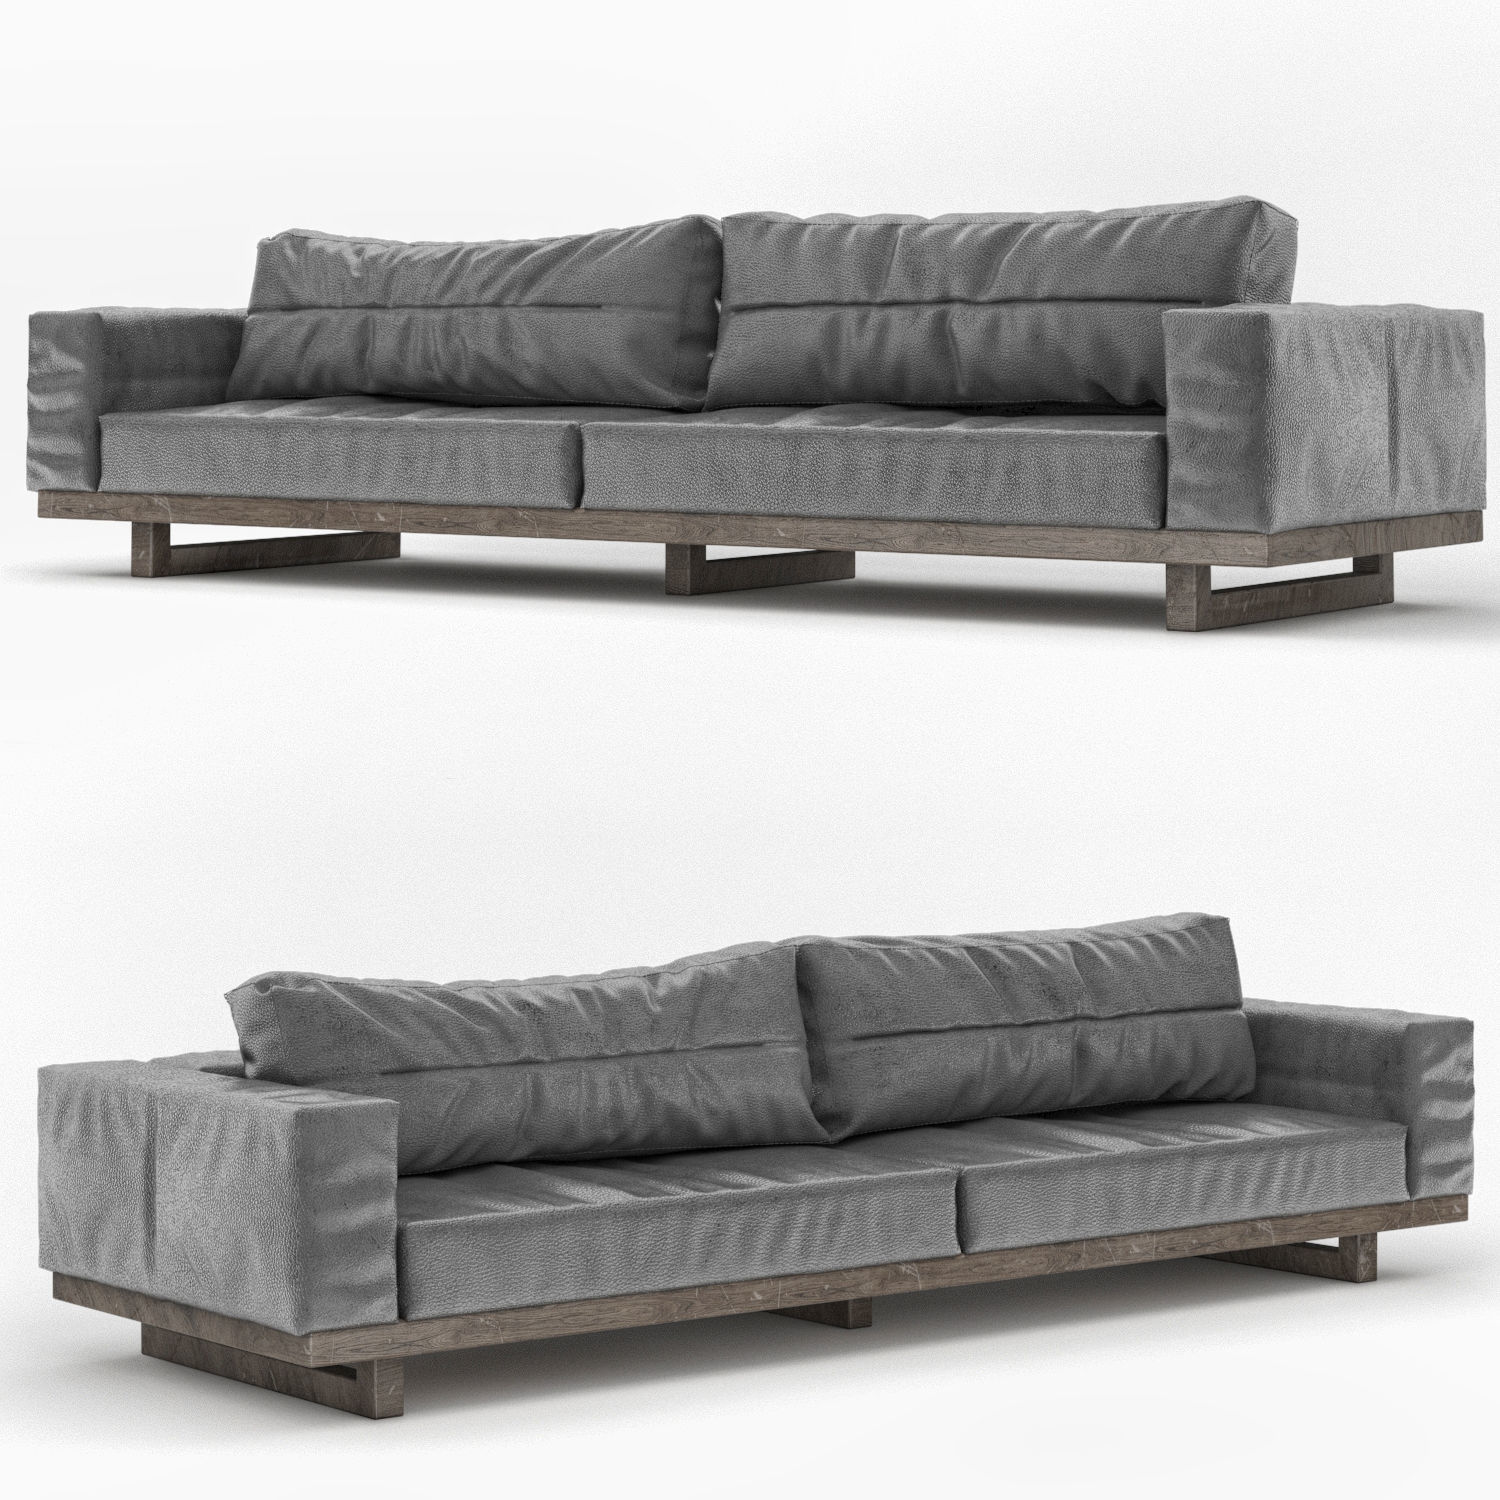 Picture of: Dark Gray Leather Sofa 3d Model Cgtrader